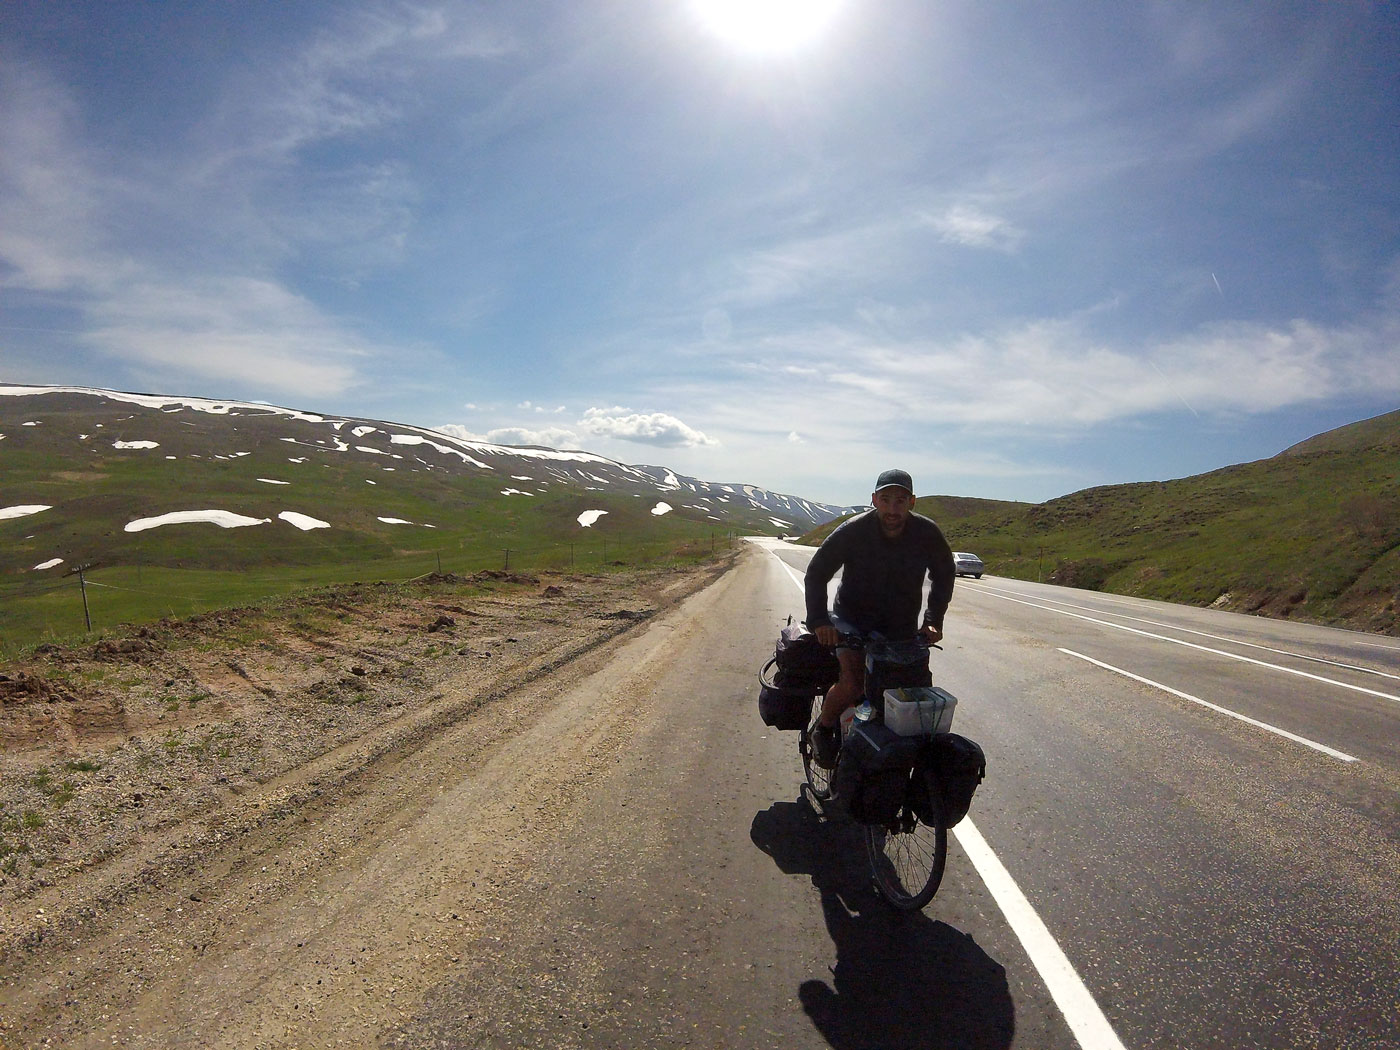 La Turquie à vélo, Arthur sur la route vers Erzincan avec les sommets enneigés. Cycling Turquey, Arthur on the road to Erzincan with snow-capped peaks.